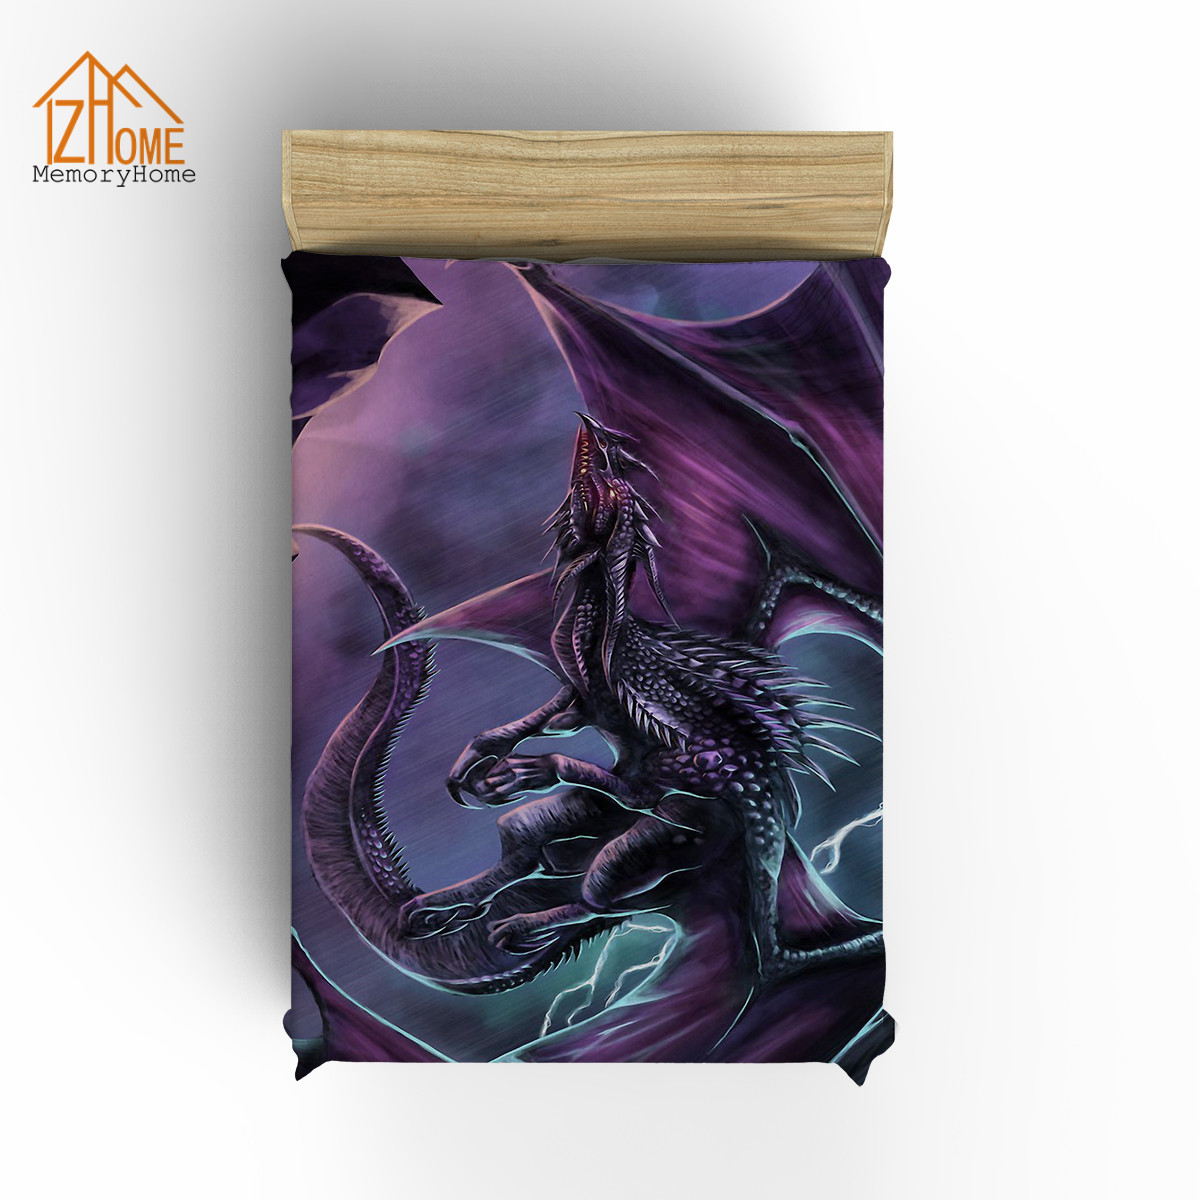 Memory Home Personalized Blanket Magic Dragon Mysterious